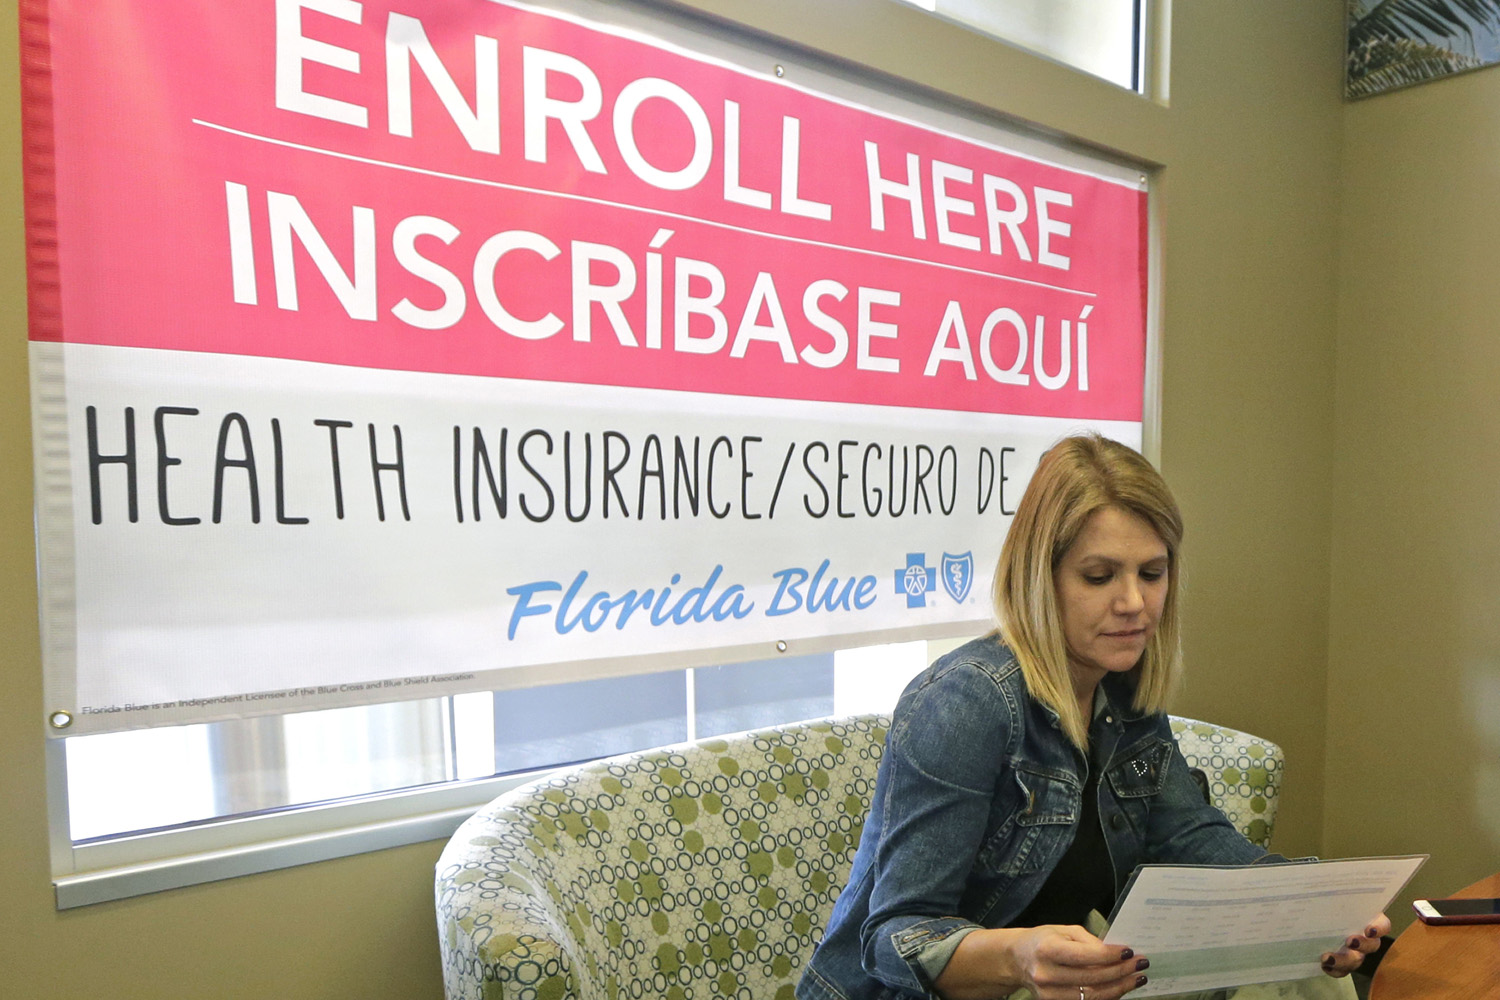 Catherine Reviati reviews the different Affordable Care Act enrollment options, Thursday, Nov. 2, 2017, in Hialeah, Fla. (Alan Diaz/AP)